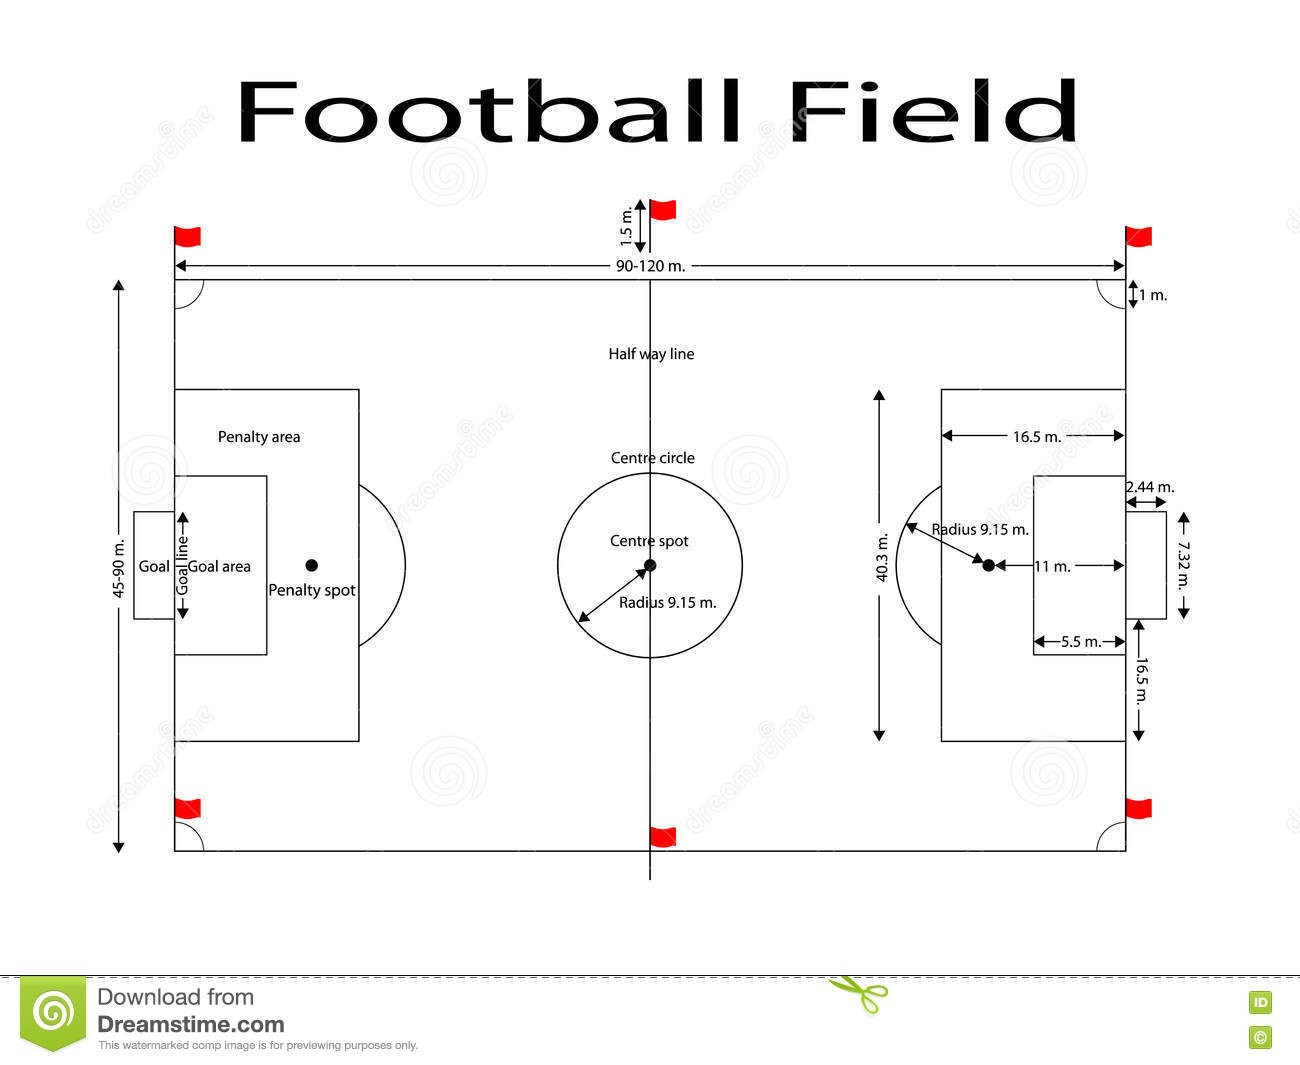 Football Pitch Diagram